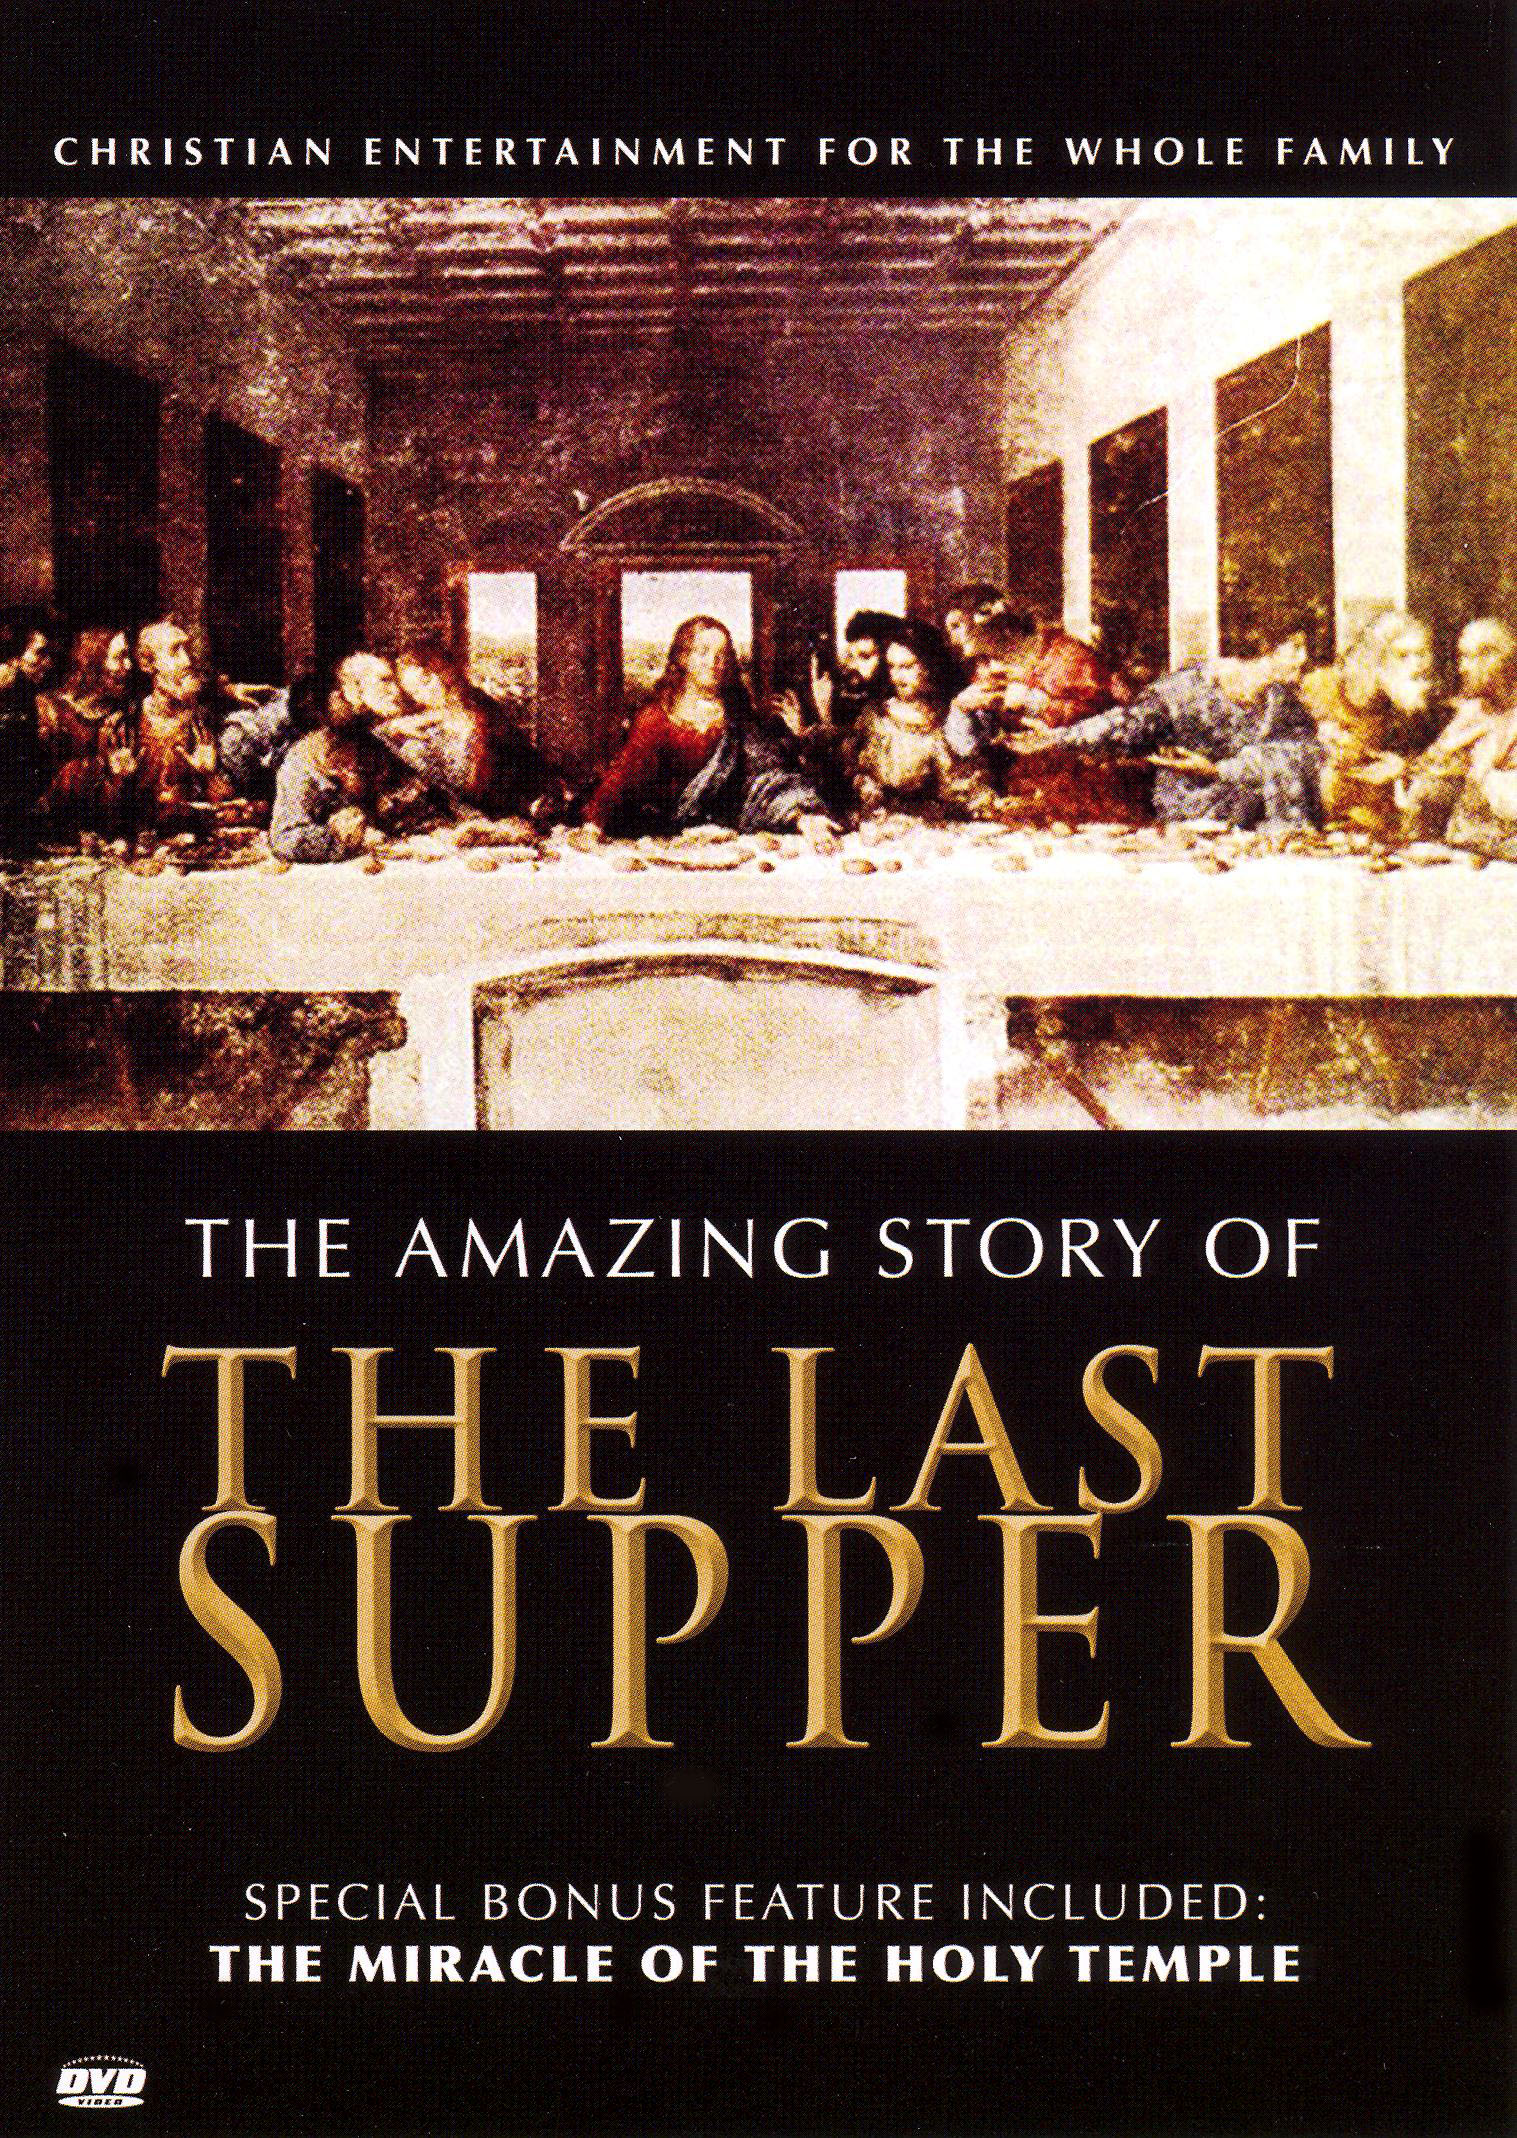 The Amazing Story of the Last Supper